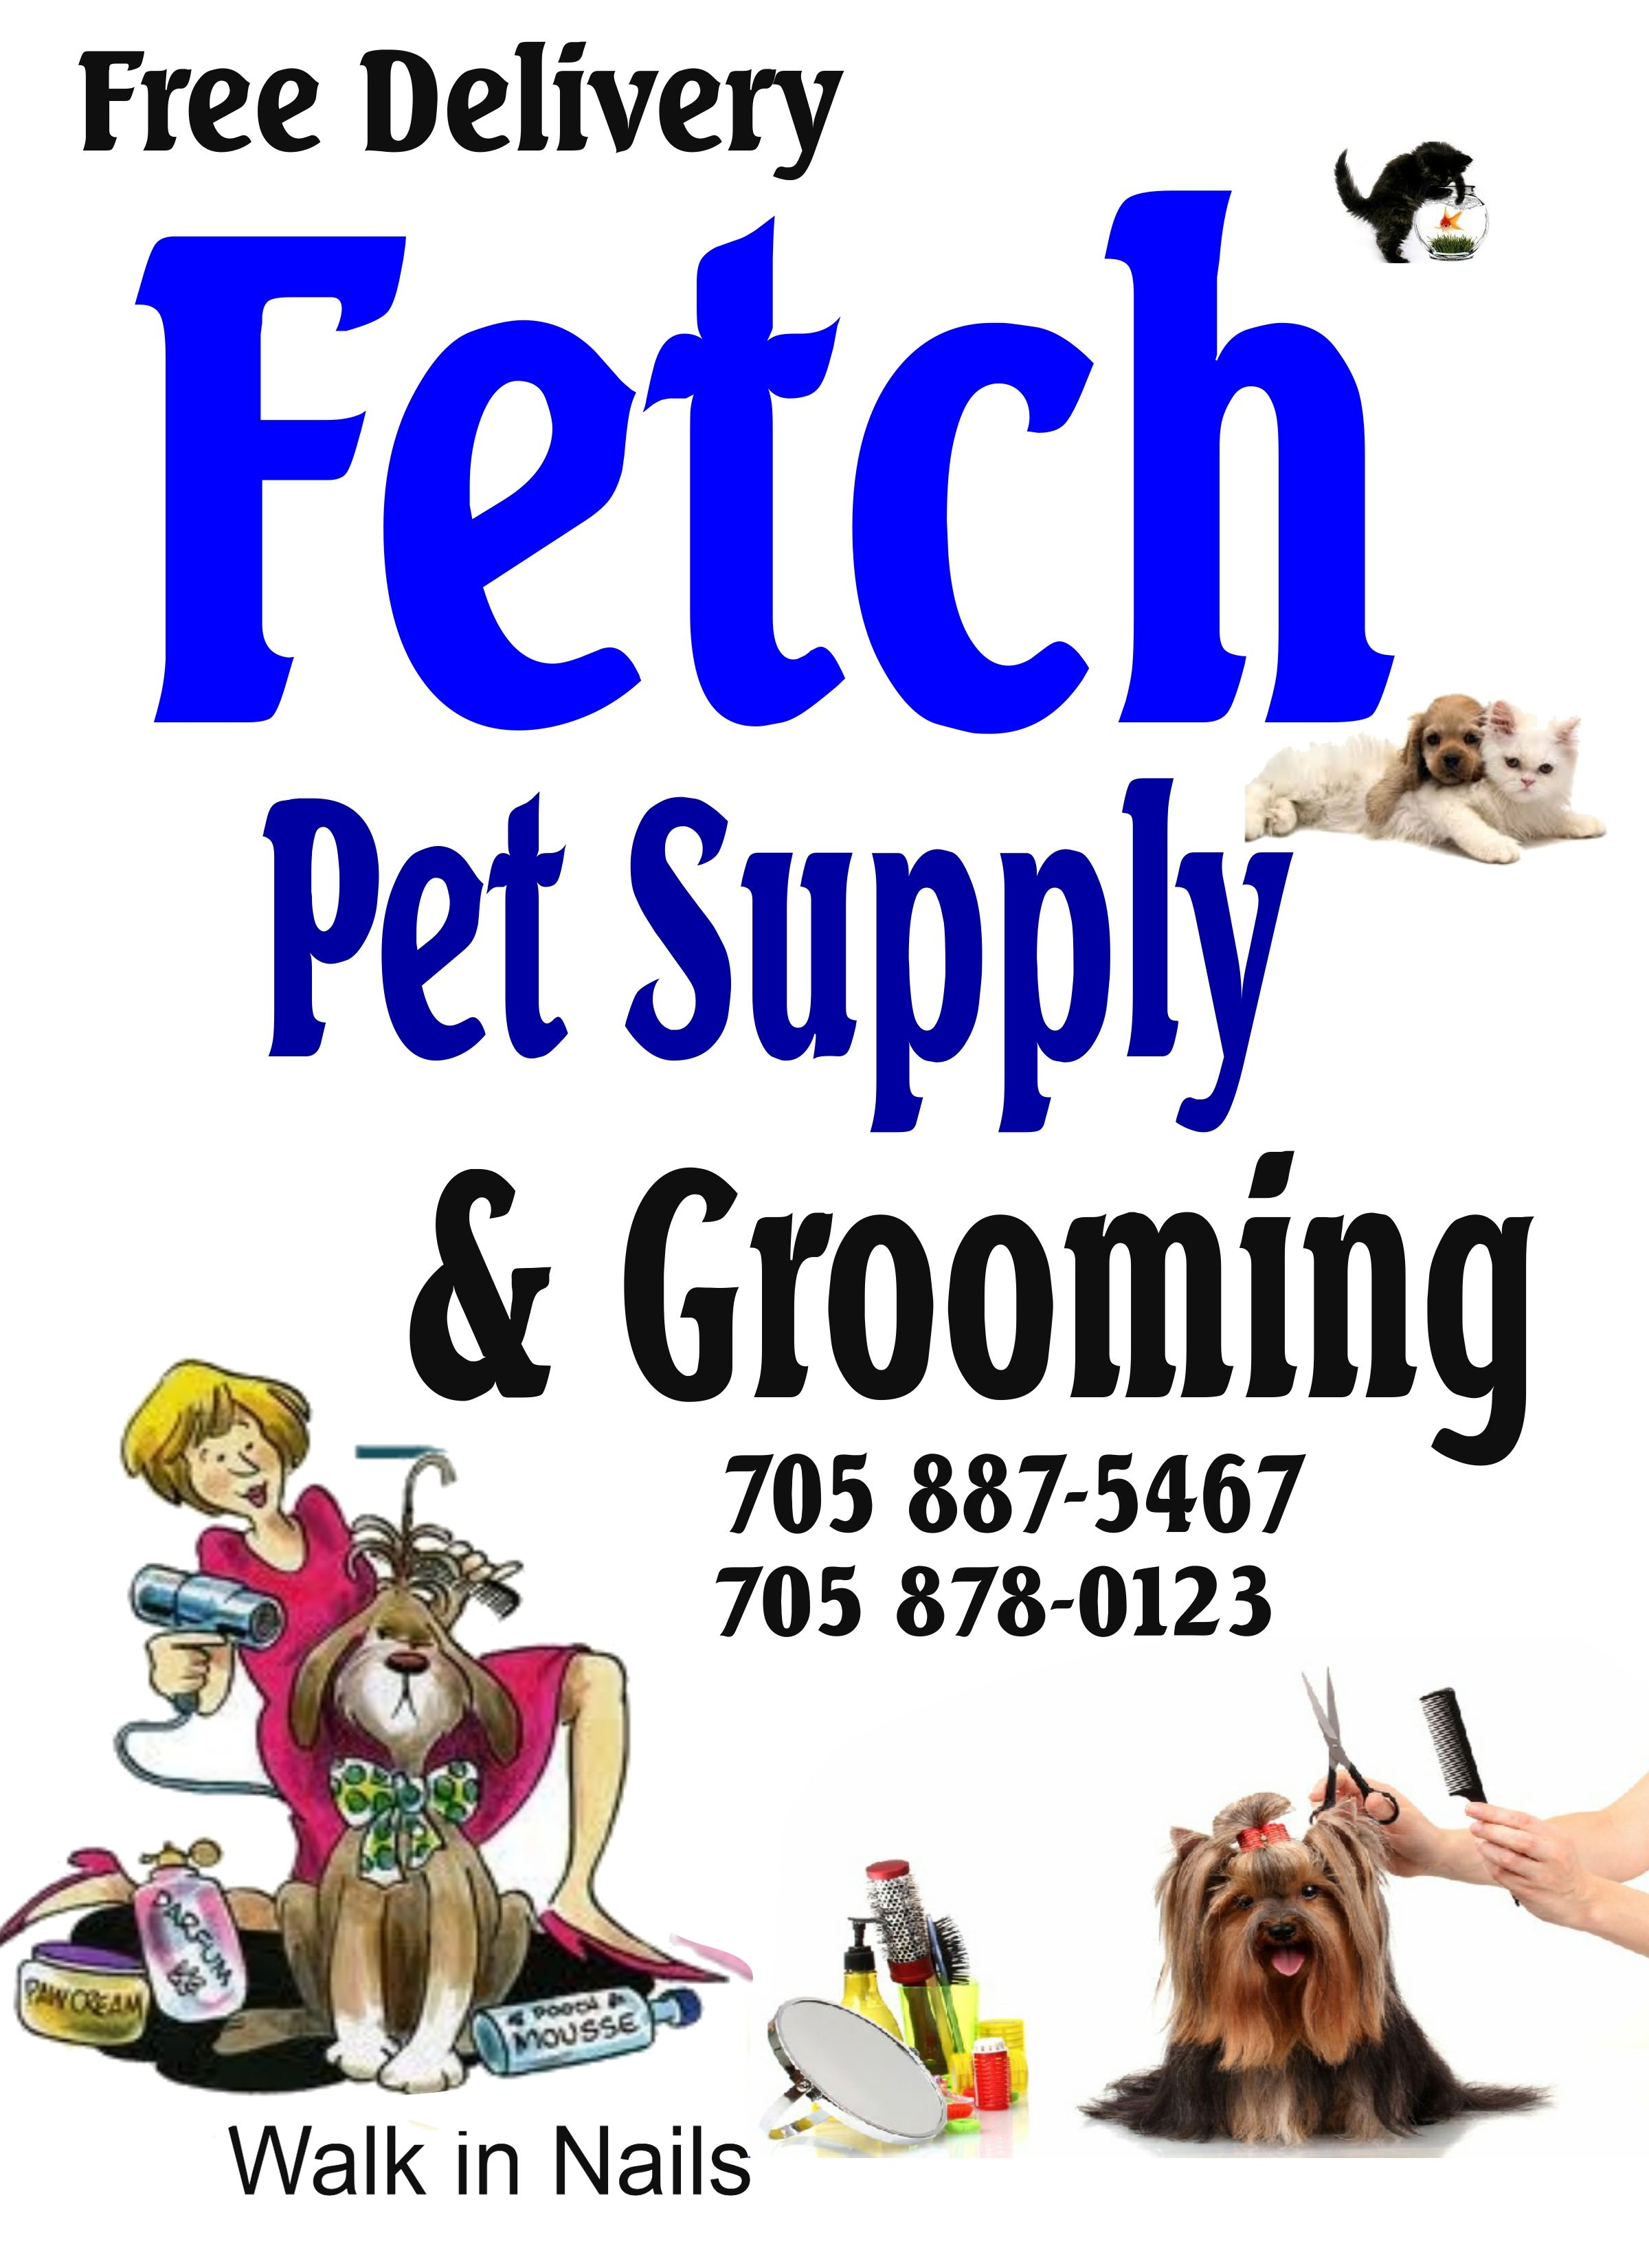 Book Your Grooming Today Dog With Images Pet Supplies Food